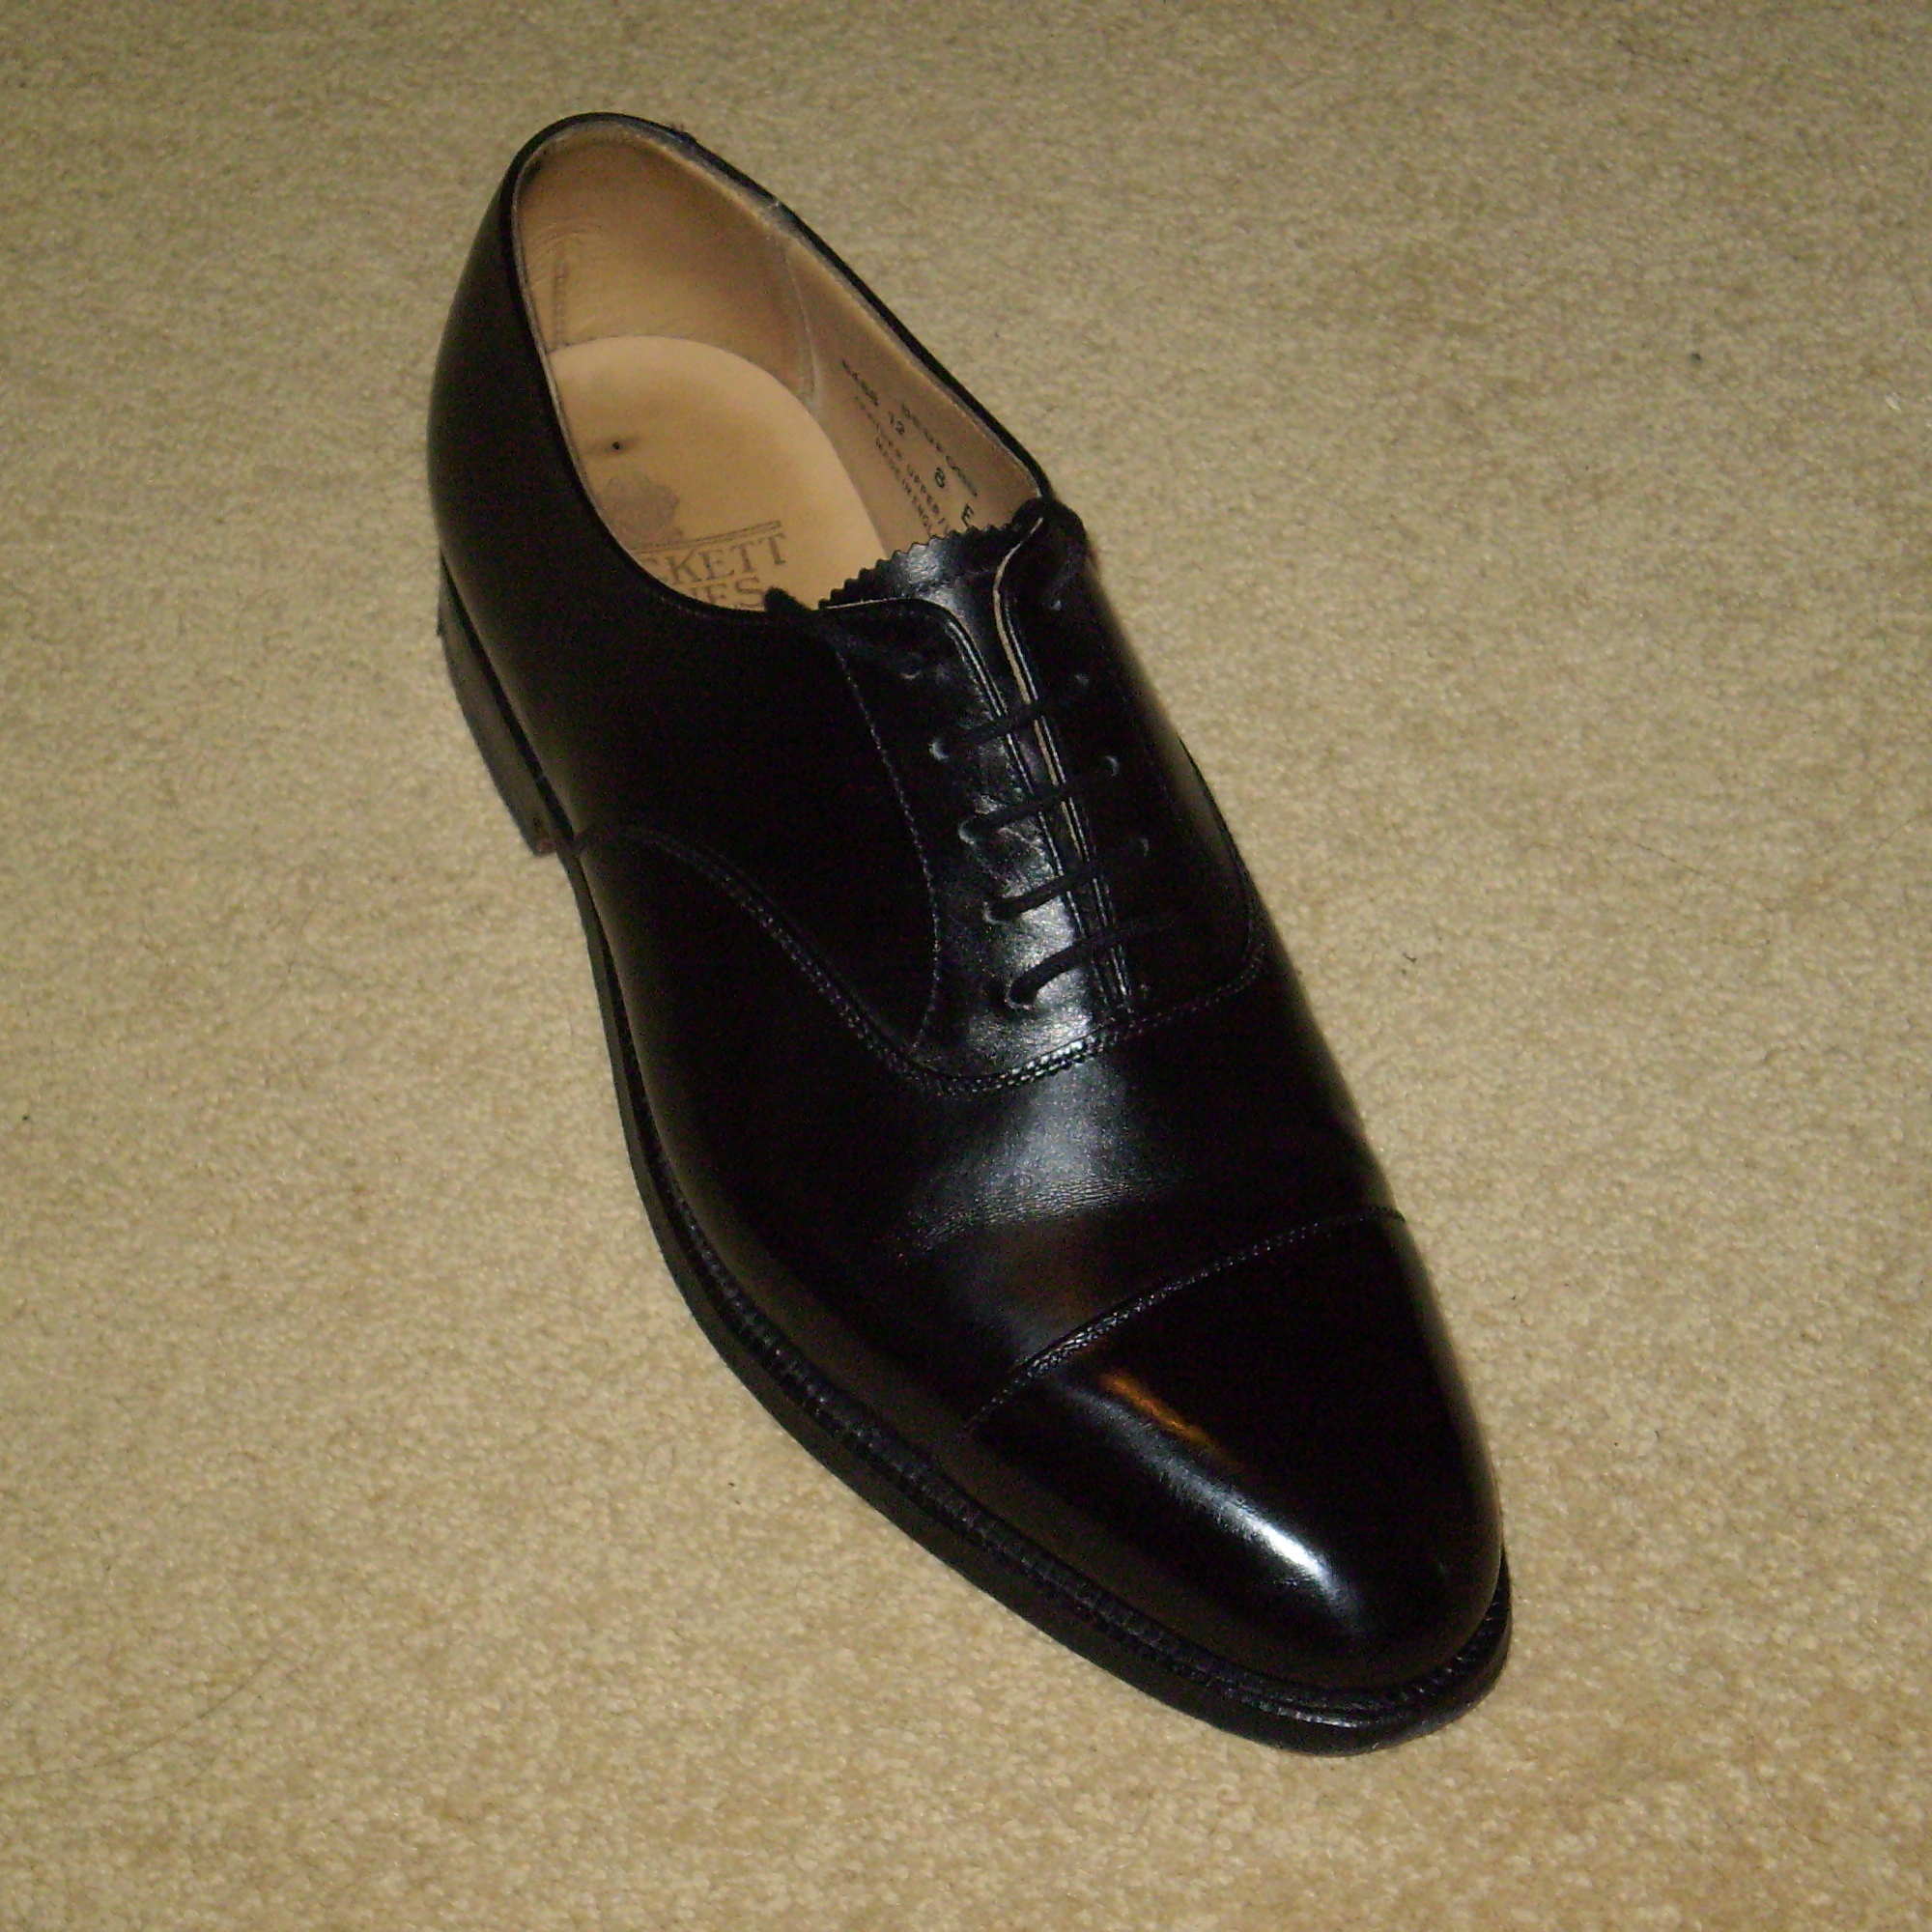 Slang Black Shoe